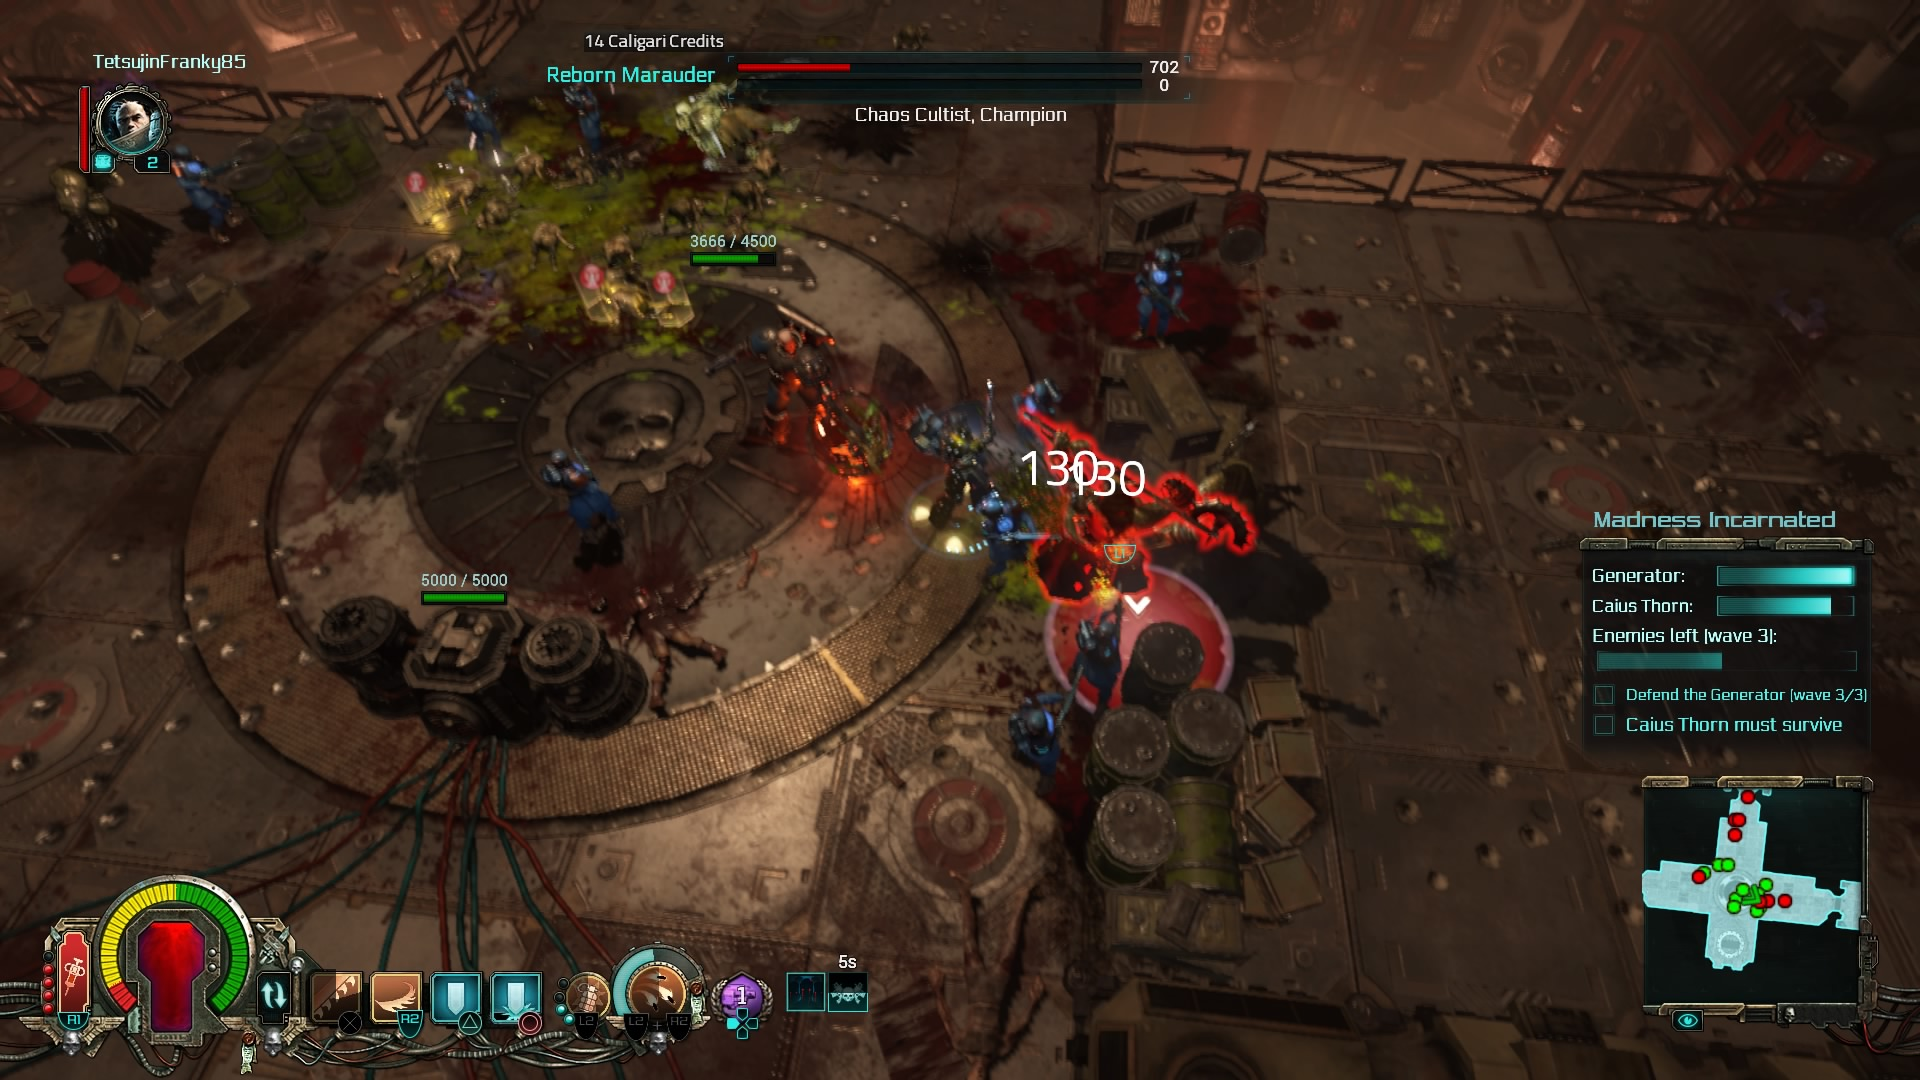 Warhammer 40,000: Inquisitor - Martyr Review - Heretics Shall Be Purged